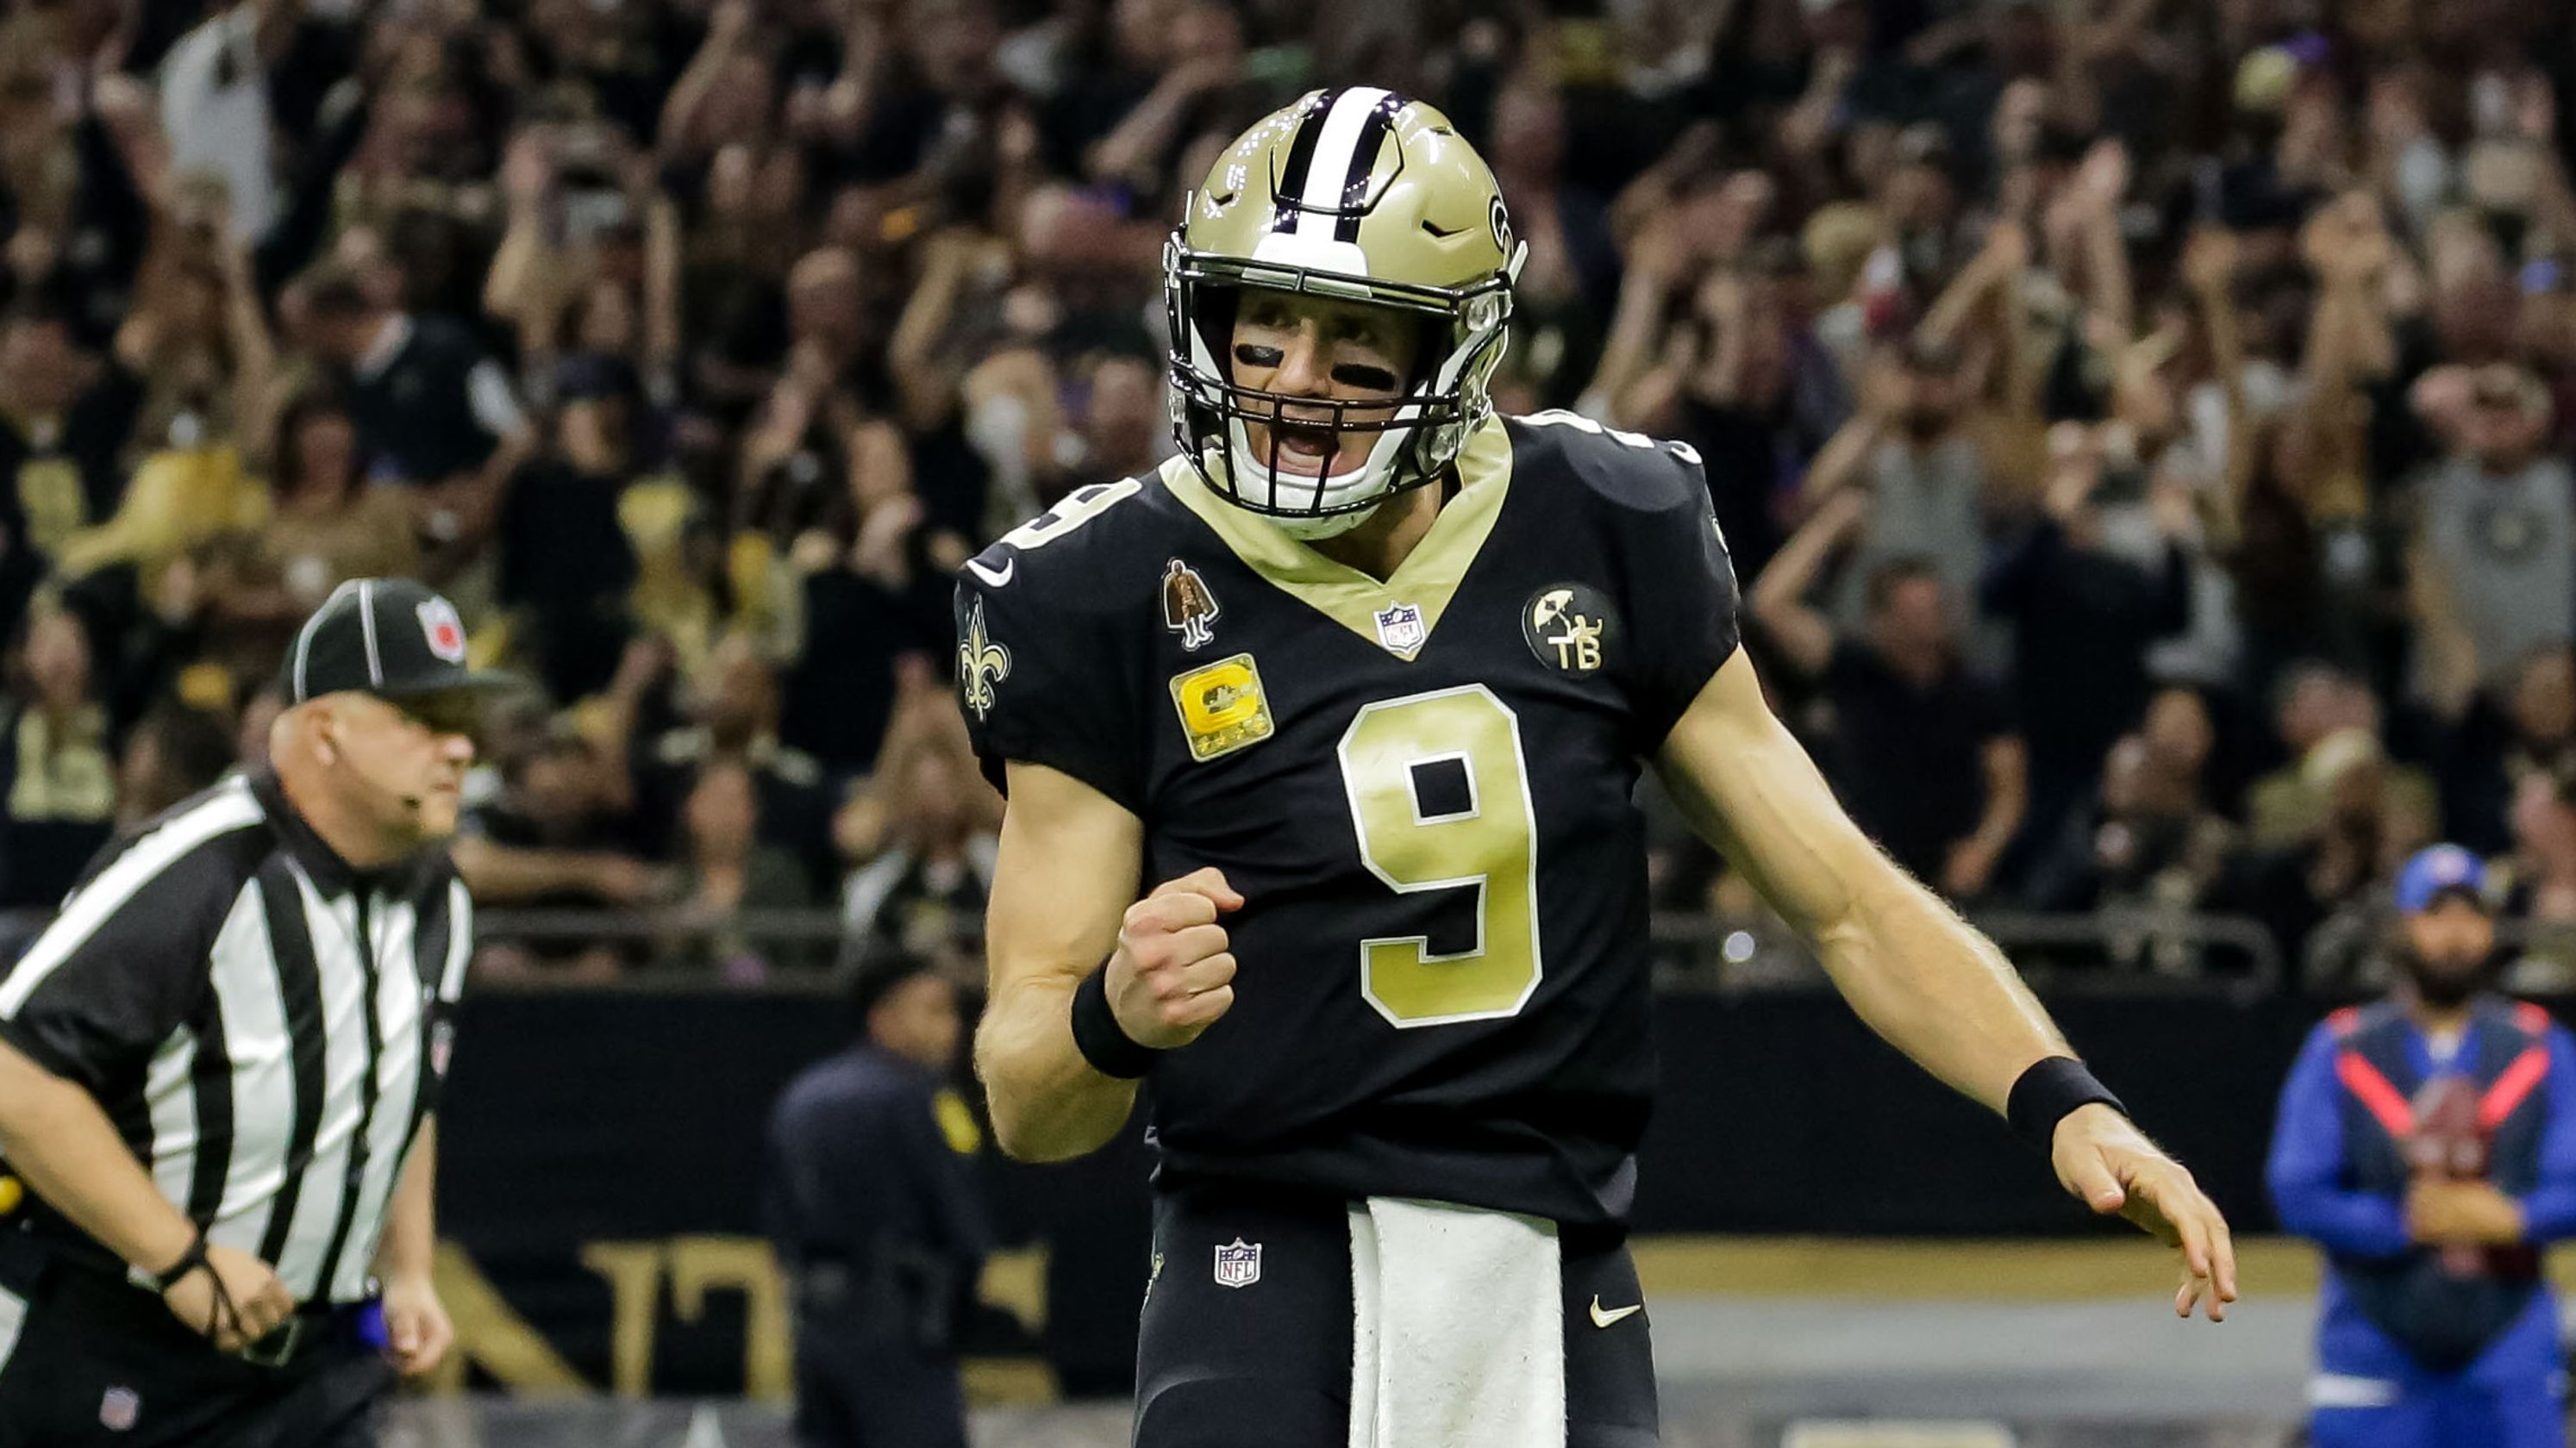 Saints Bring Rams Perfect Run To An End In Wild Shootout